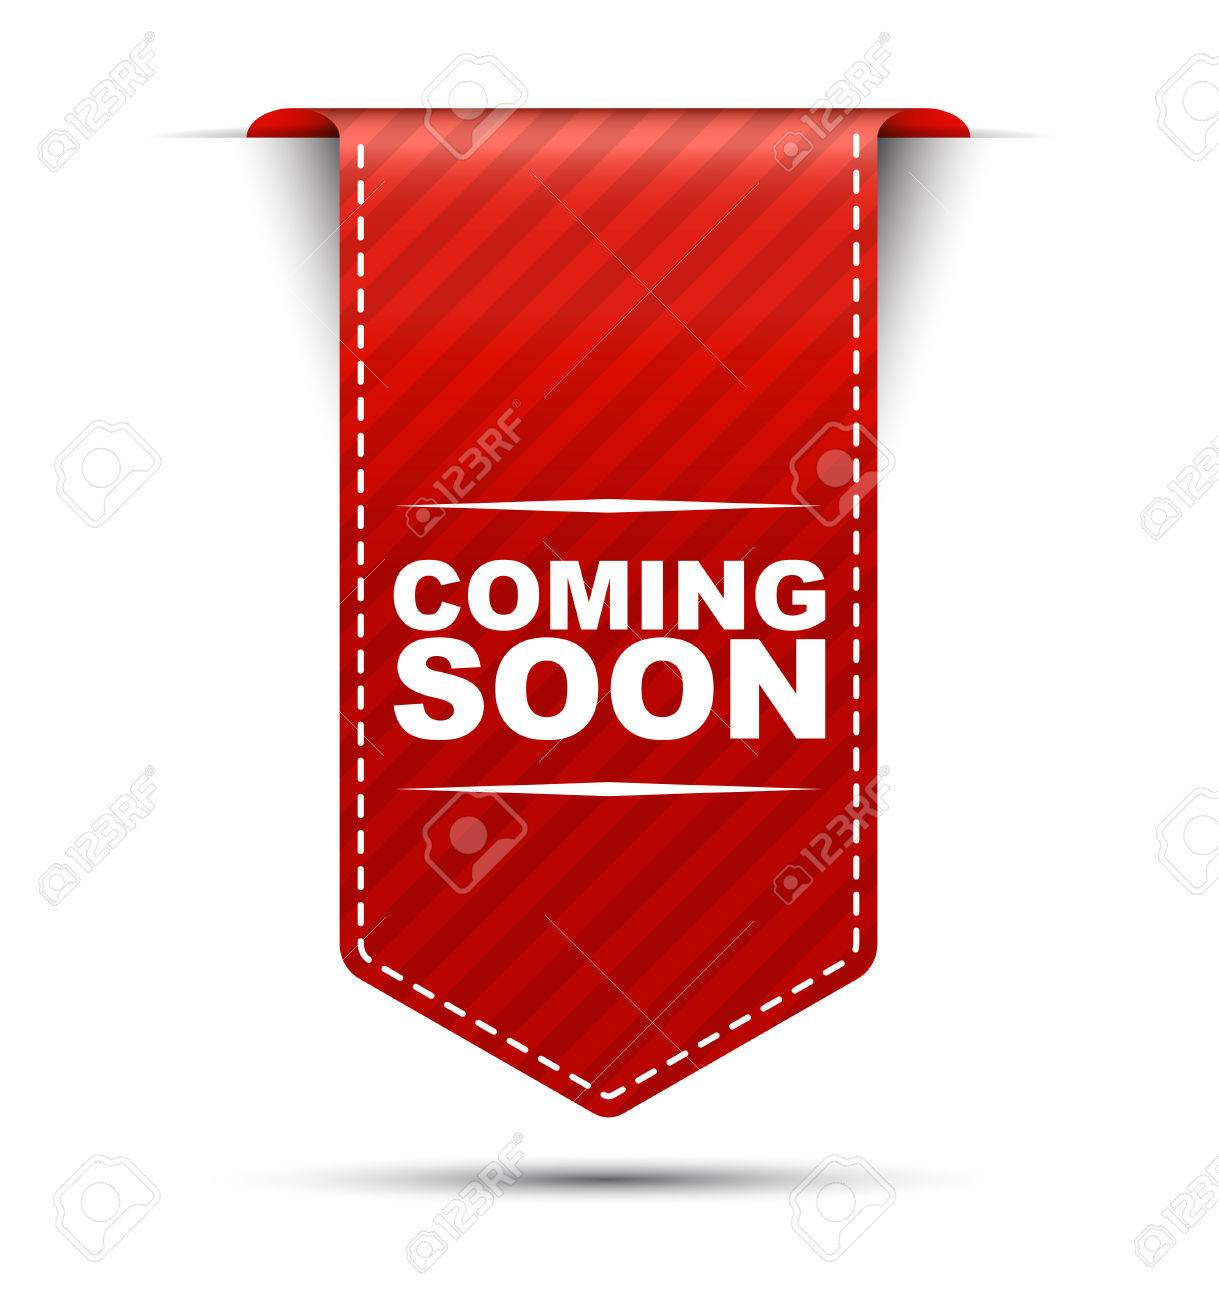 this is red vector banner design coming soon royalty free cliparts rh 123rf com vector banner design vector banner ribbon